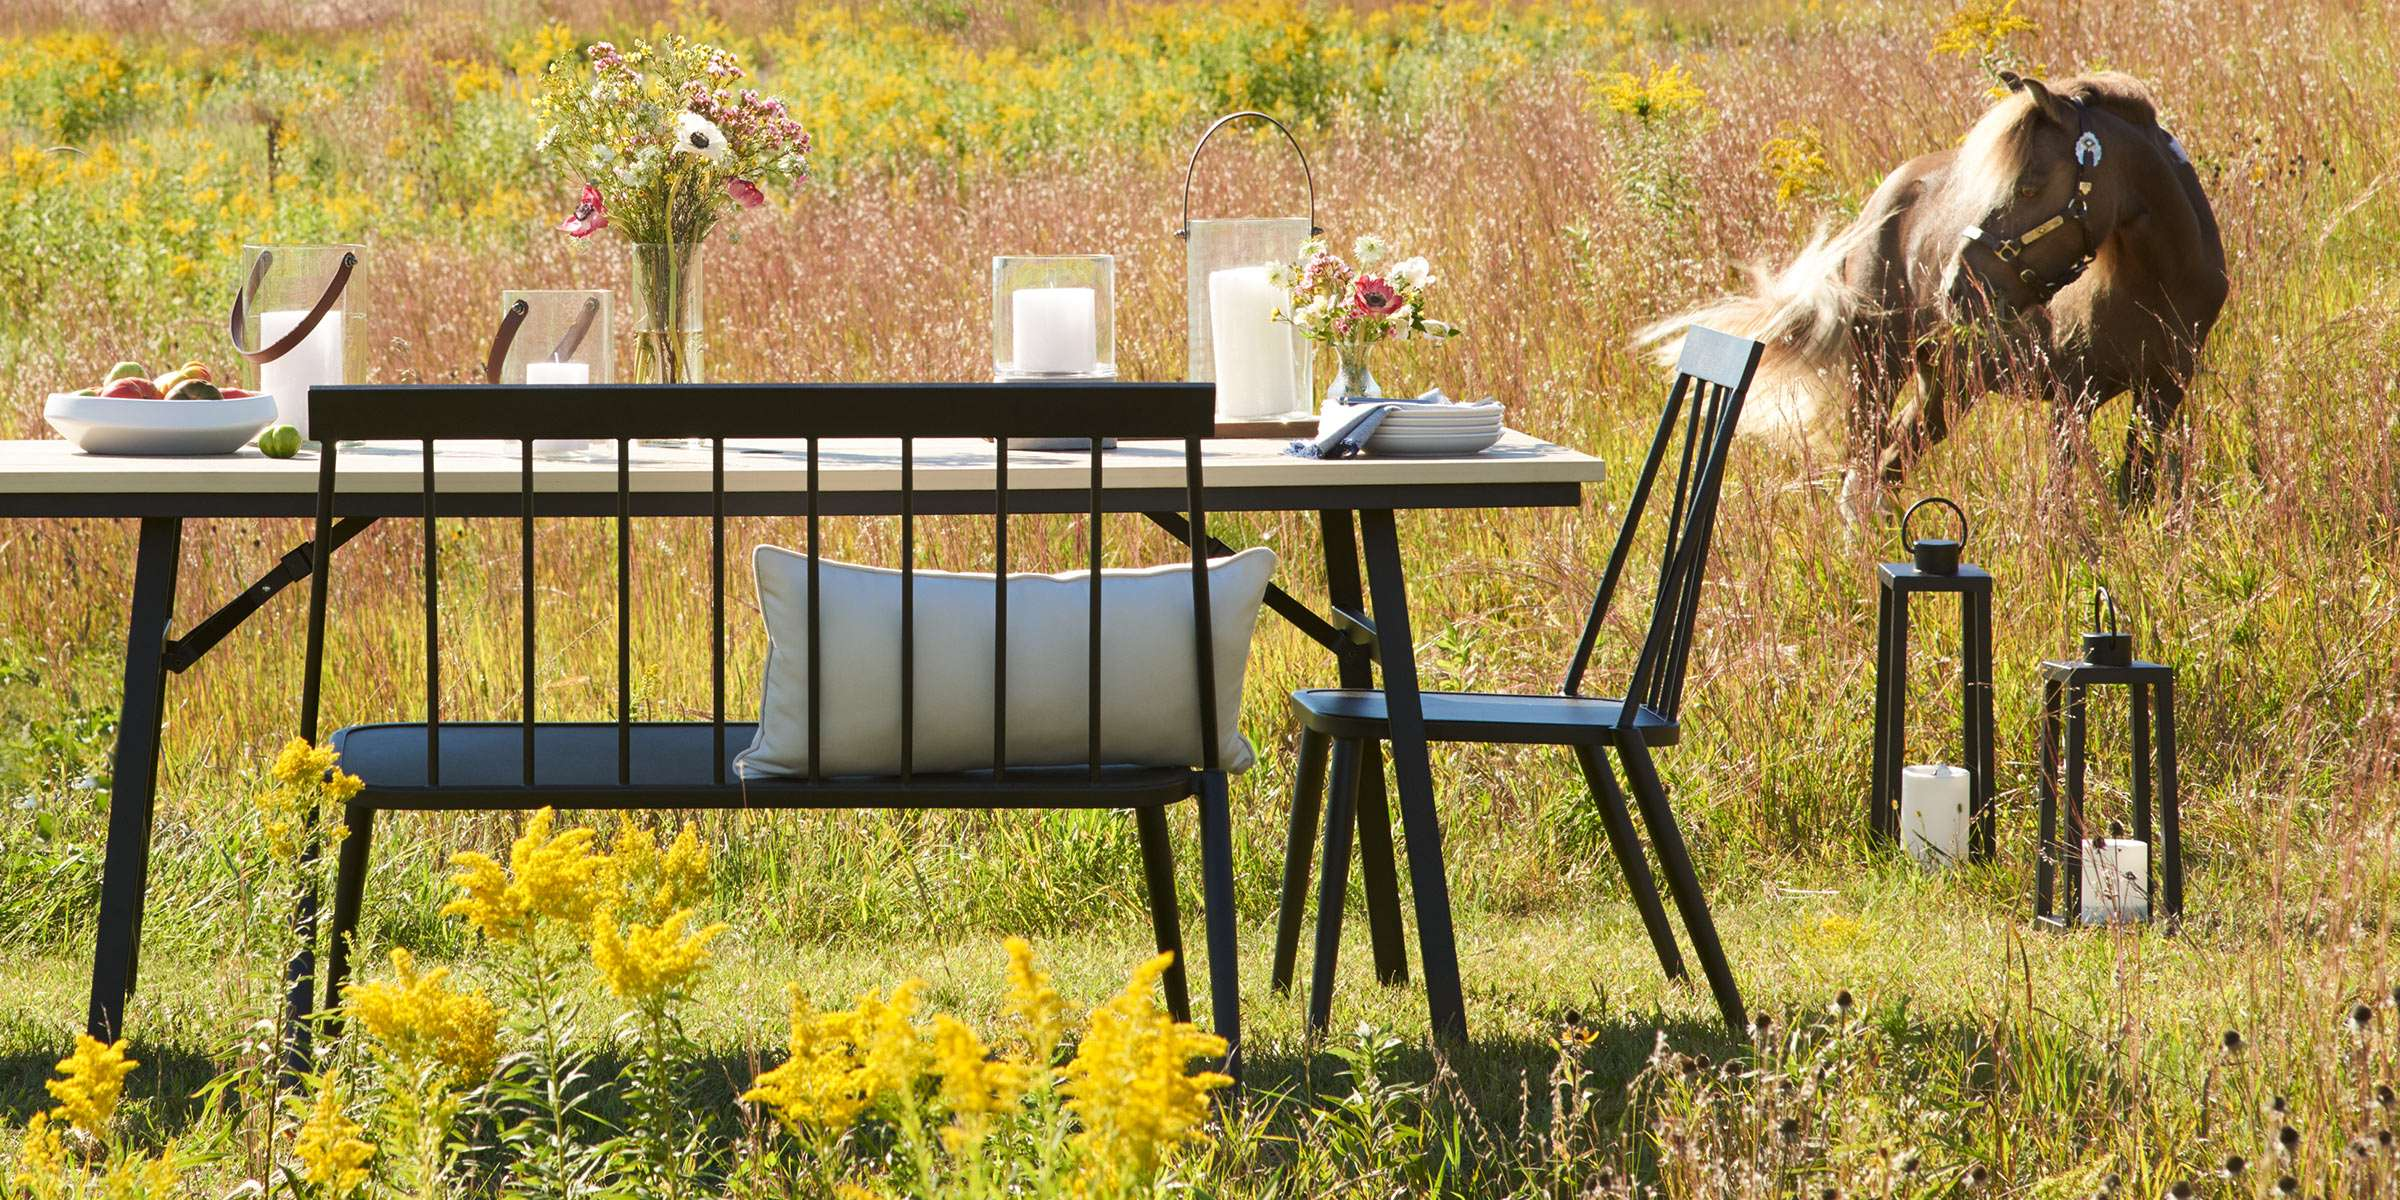 farmhouse outdoor living : Target on Target Outdoor Living id=22225